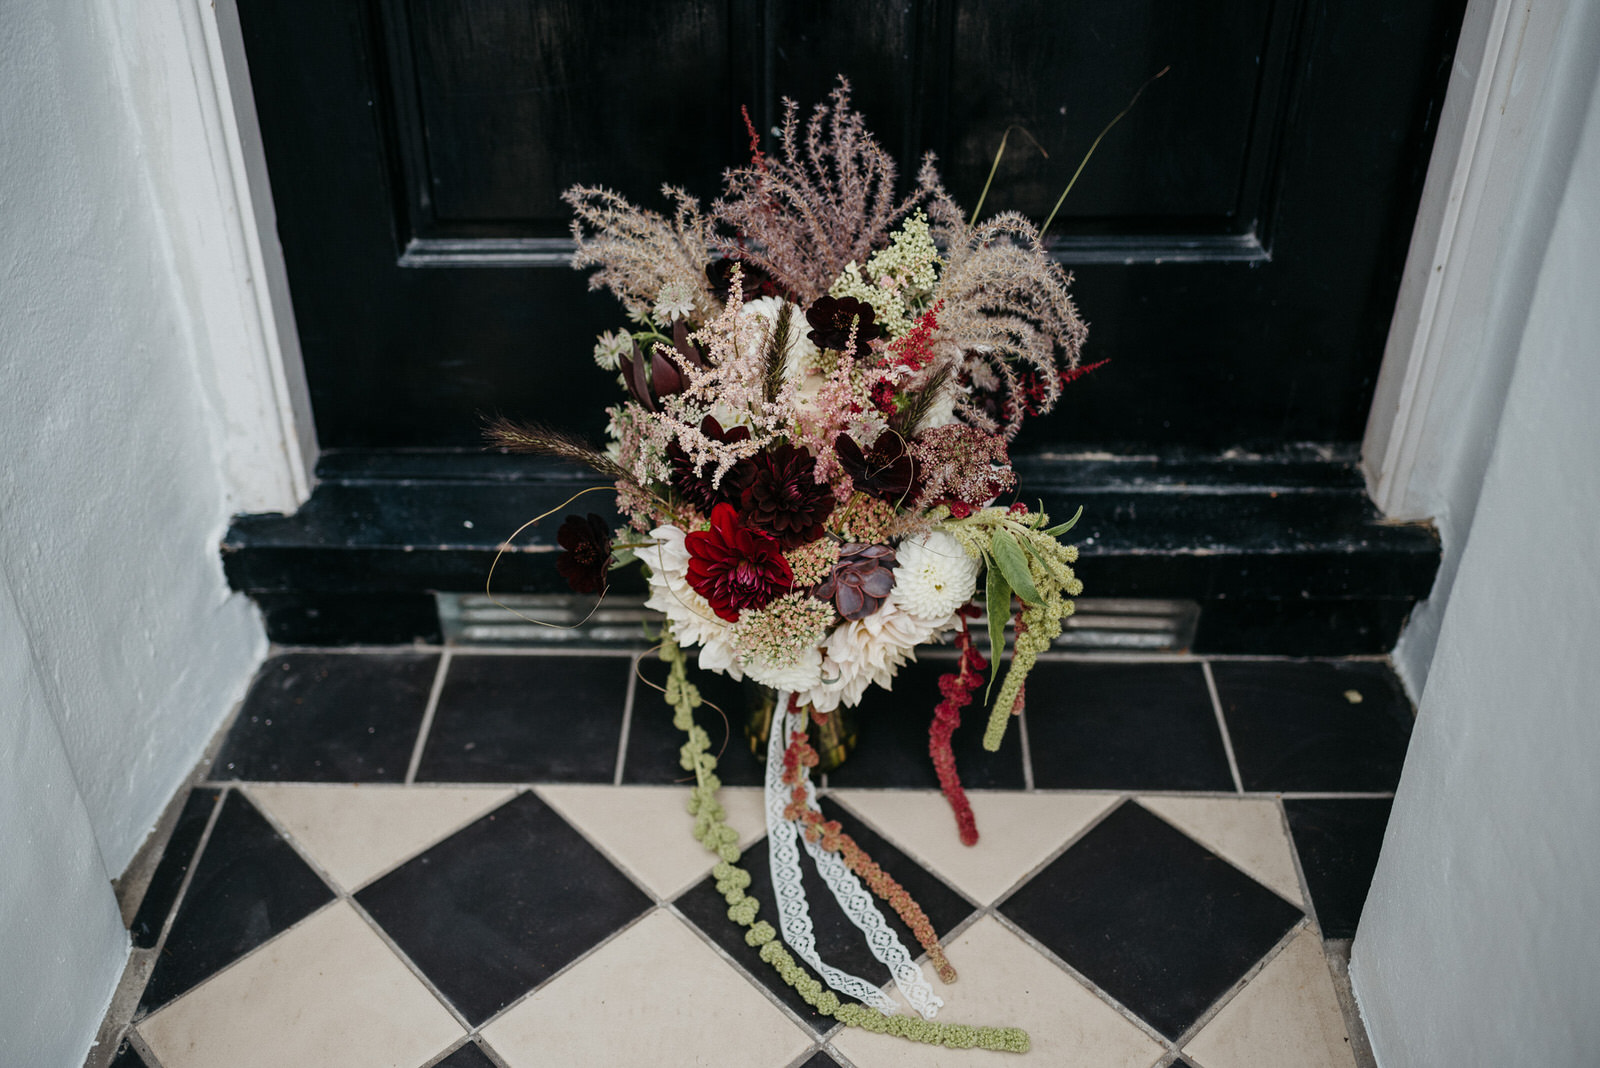 dark, sumptuous bouquet of dark wine and white dahlias, succulents, chocolate cosmos and astilbe by London florist Elie Lyons Flowers